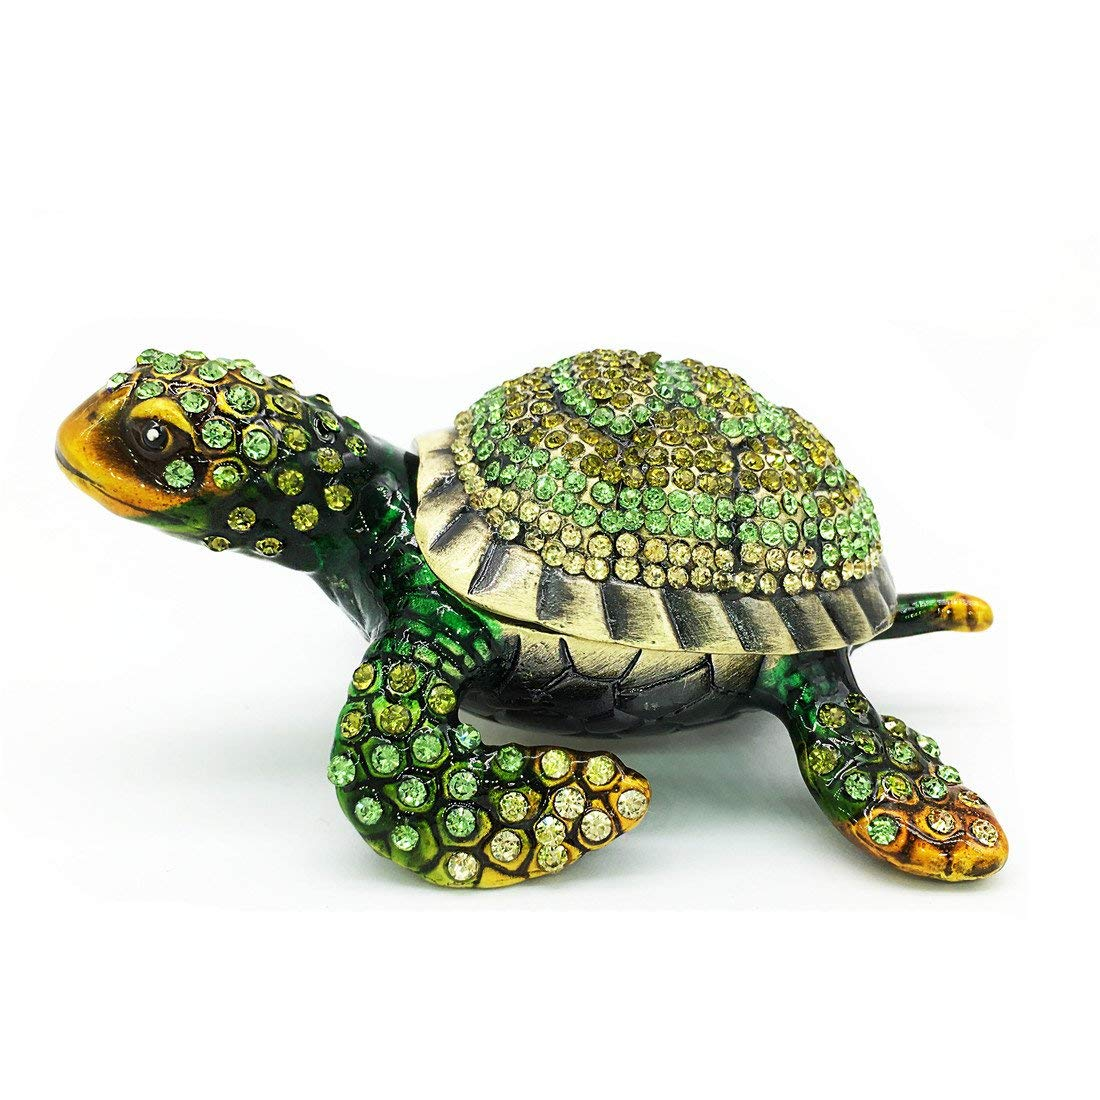 Image of Collectible Hinged Sea Turtle Jeweled Box - See More Turtle Trinket Boxes